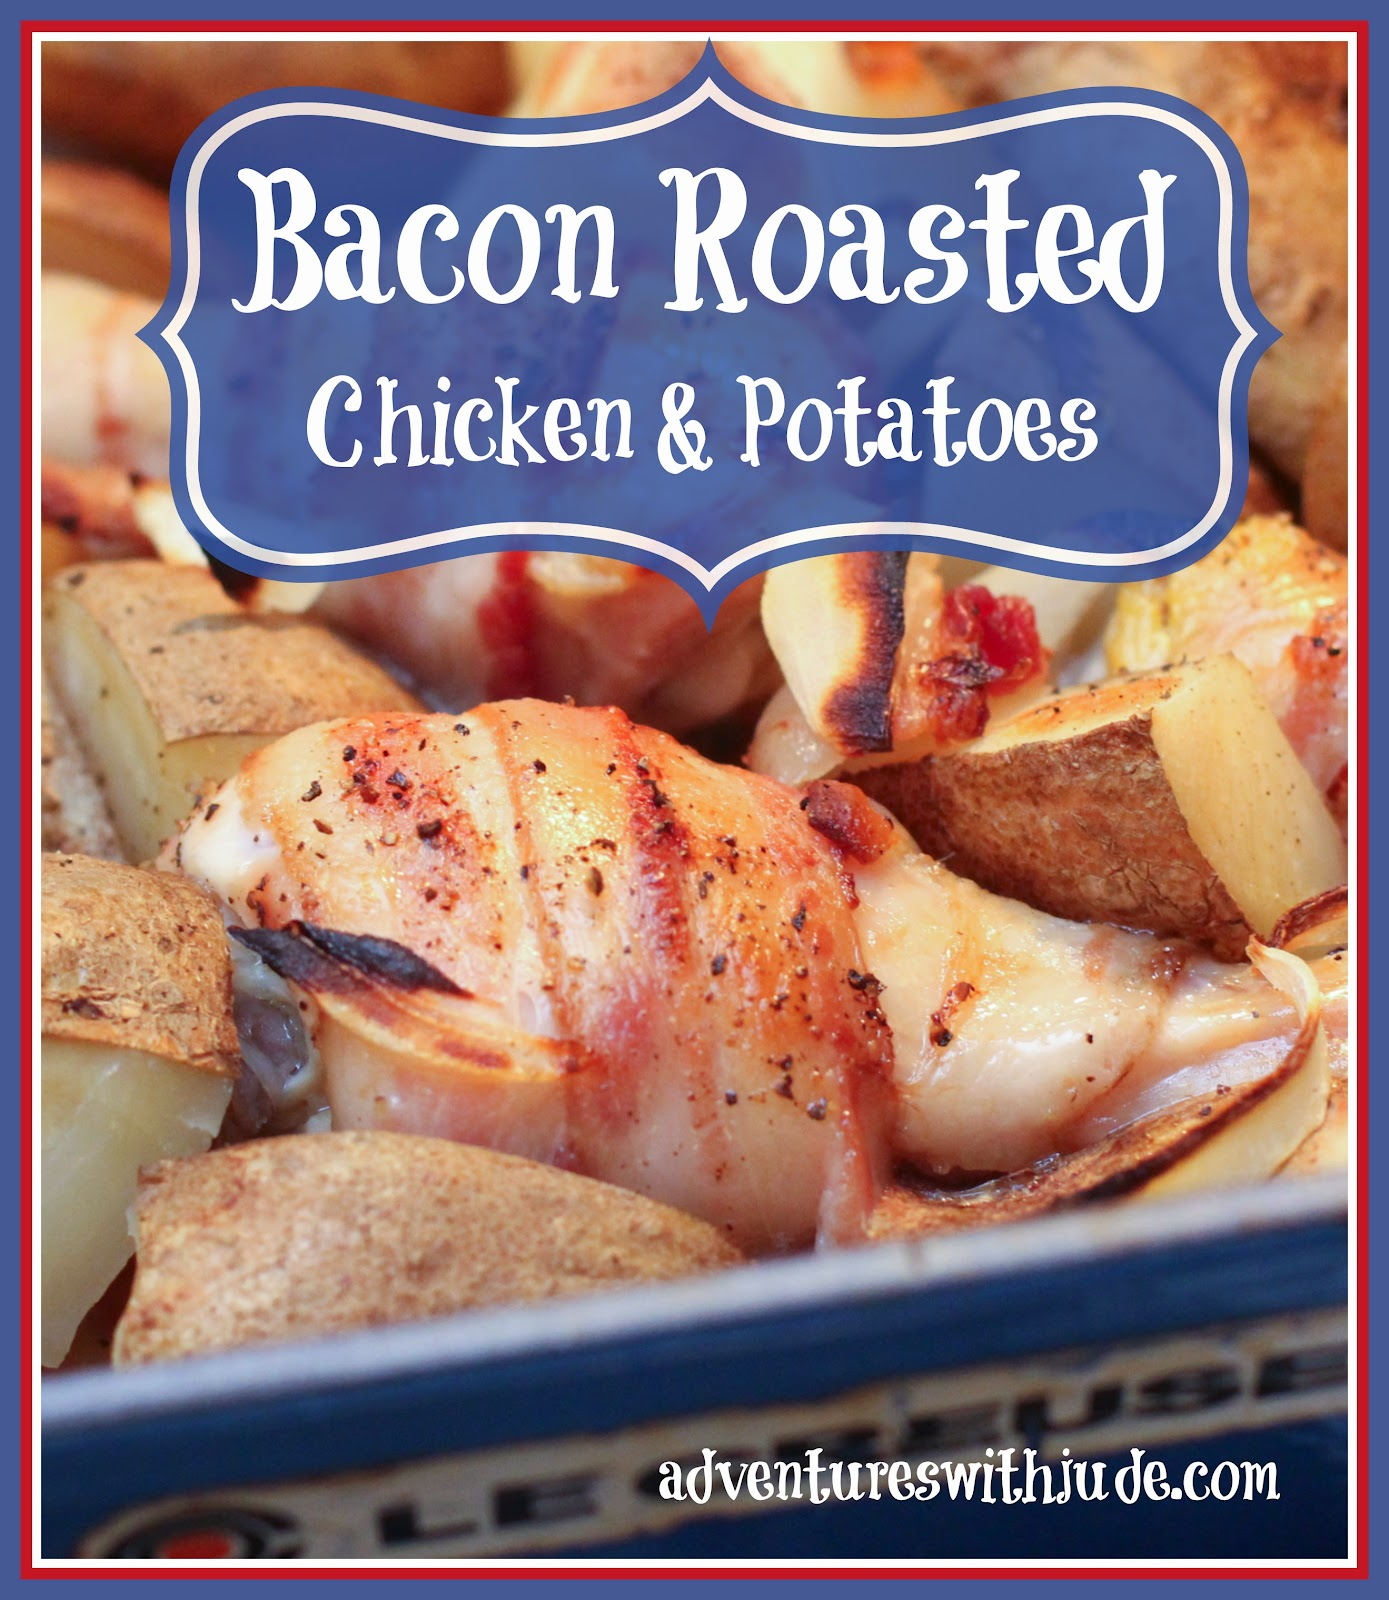 Bacon Roasted Chicken and Potatoes